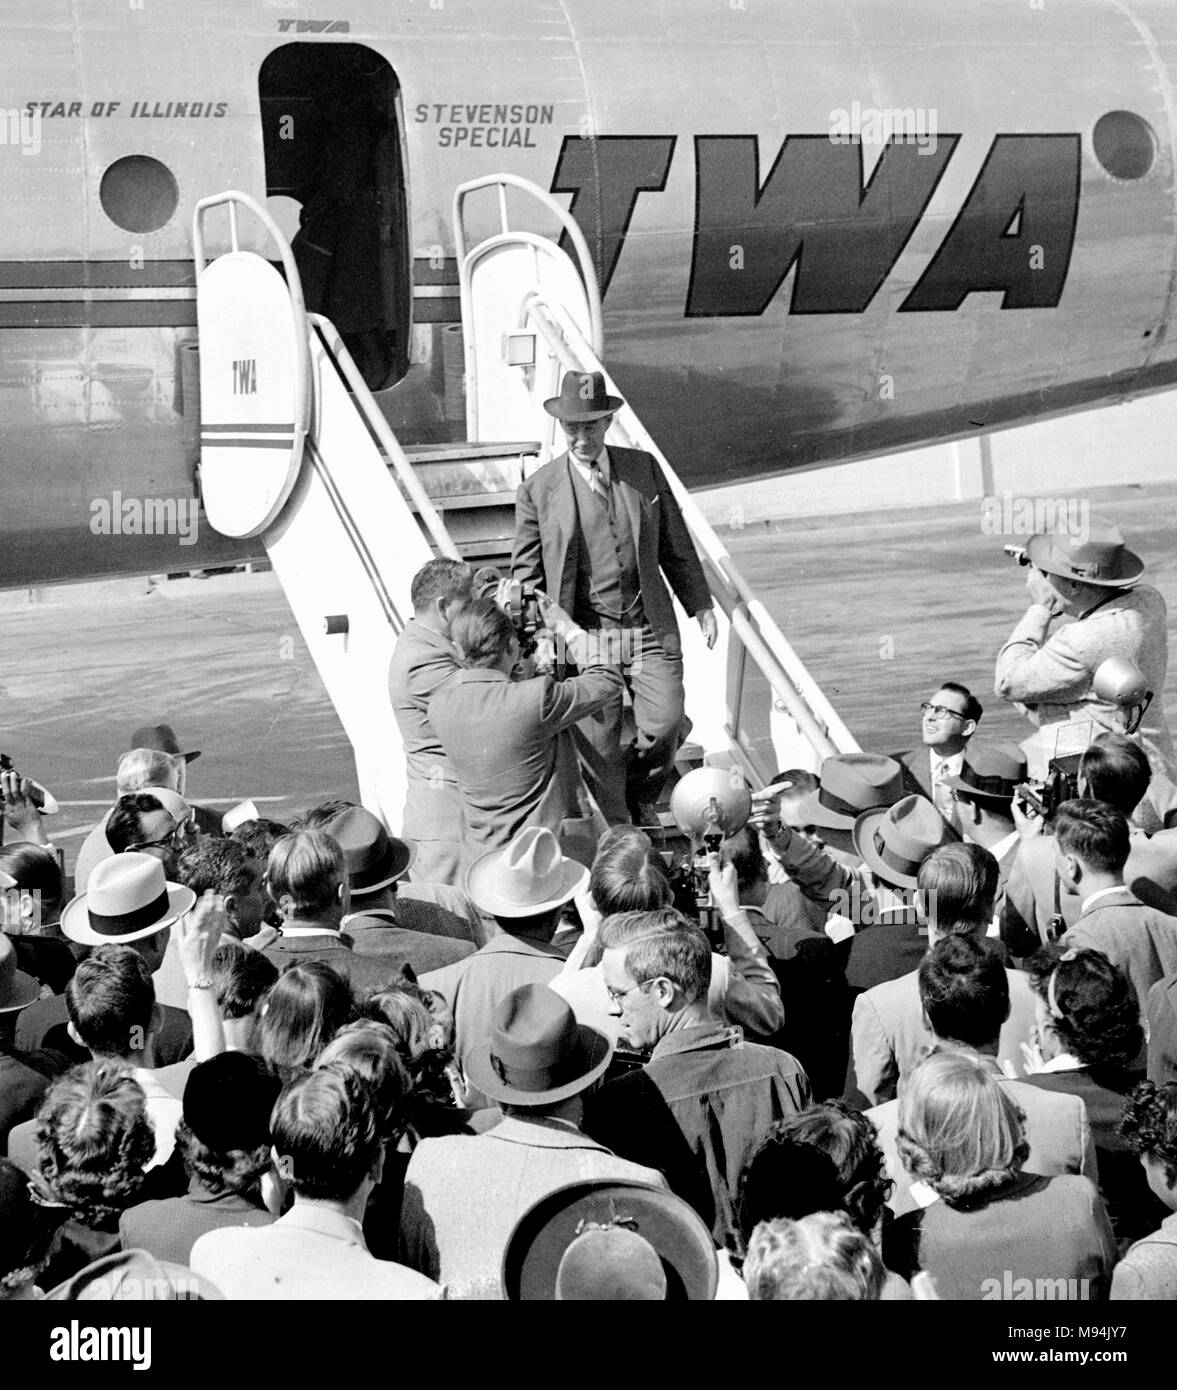 Democratic presidential candidate Adlai Stevenson arrives to campaign in Kansas City, Missouri in 1952. Stock Photo